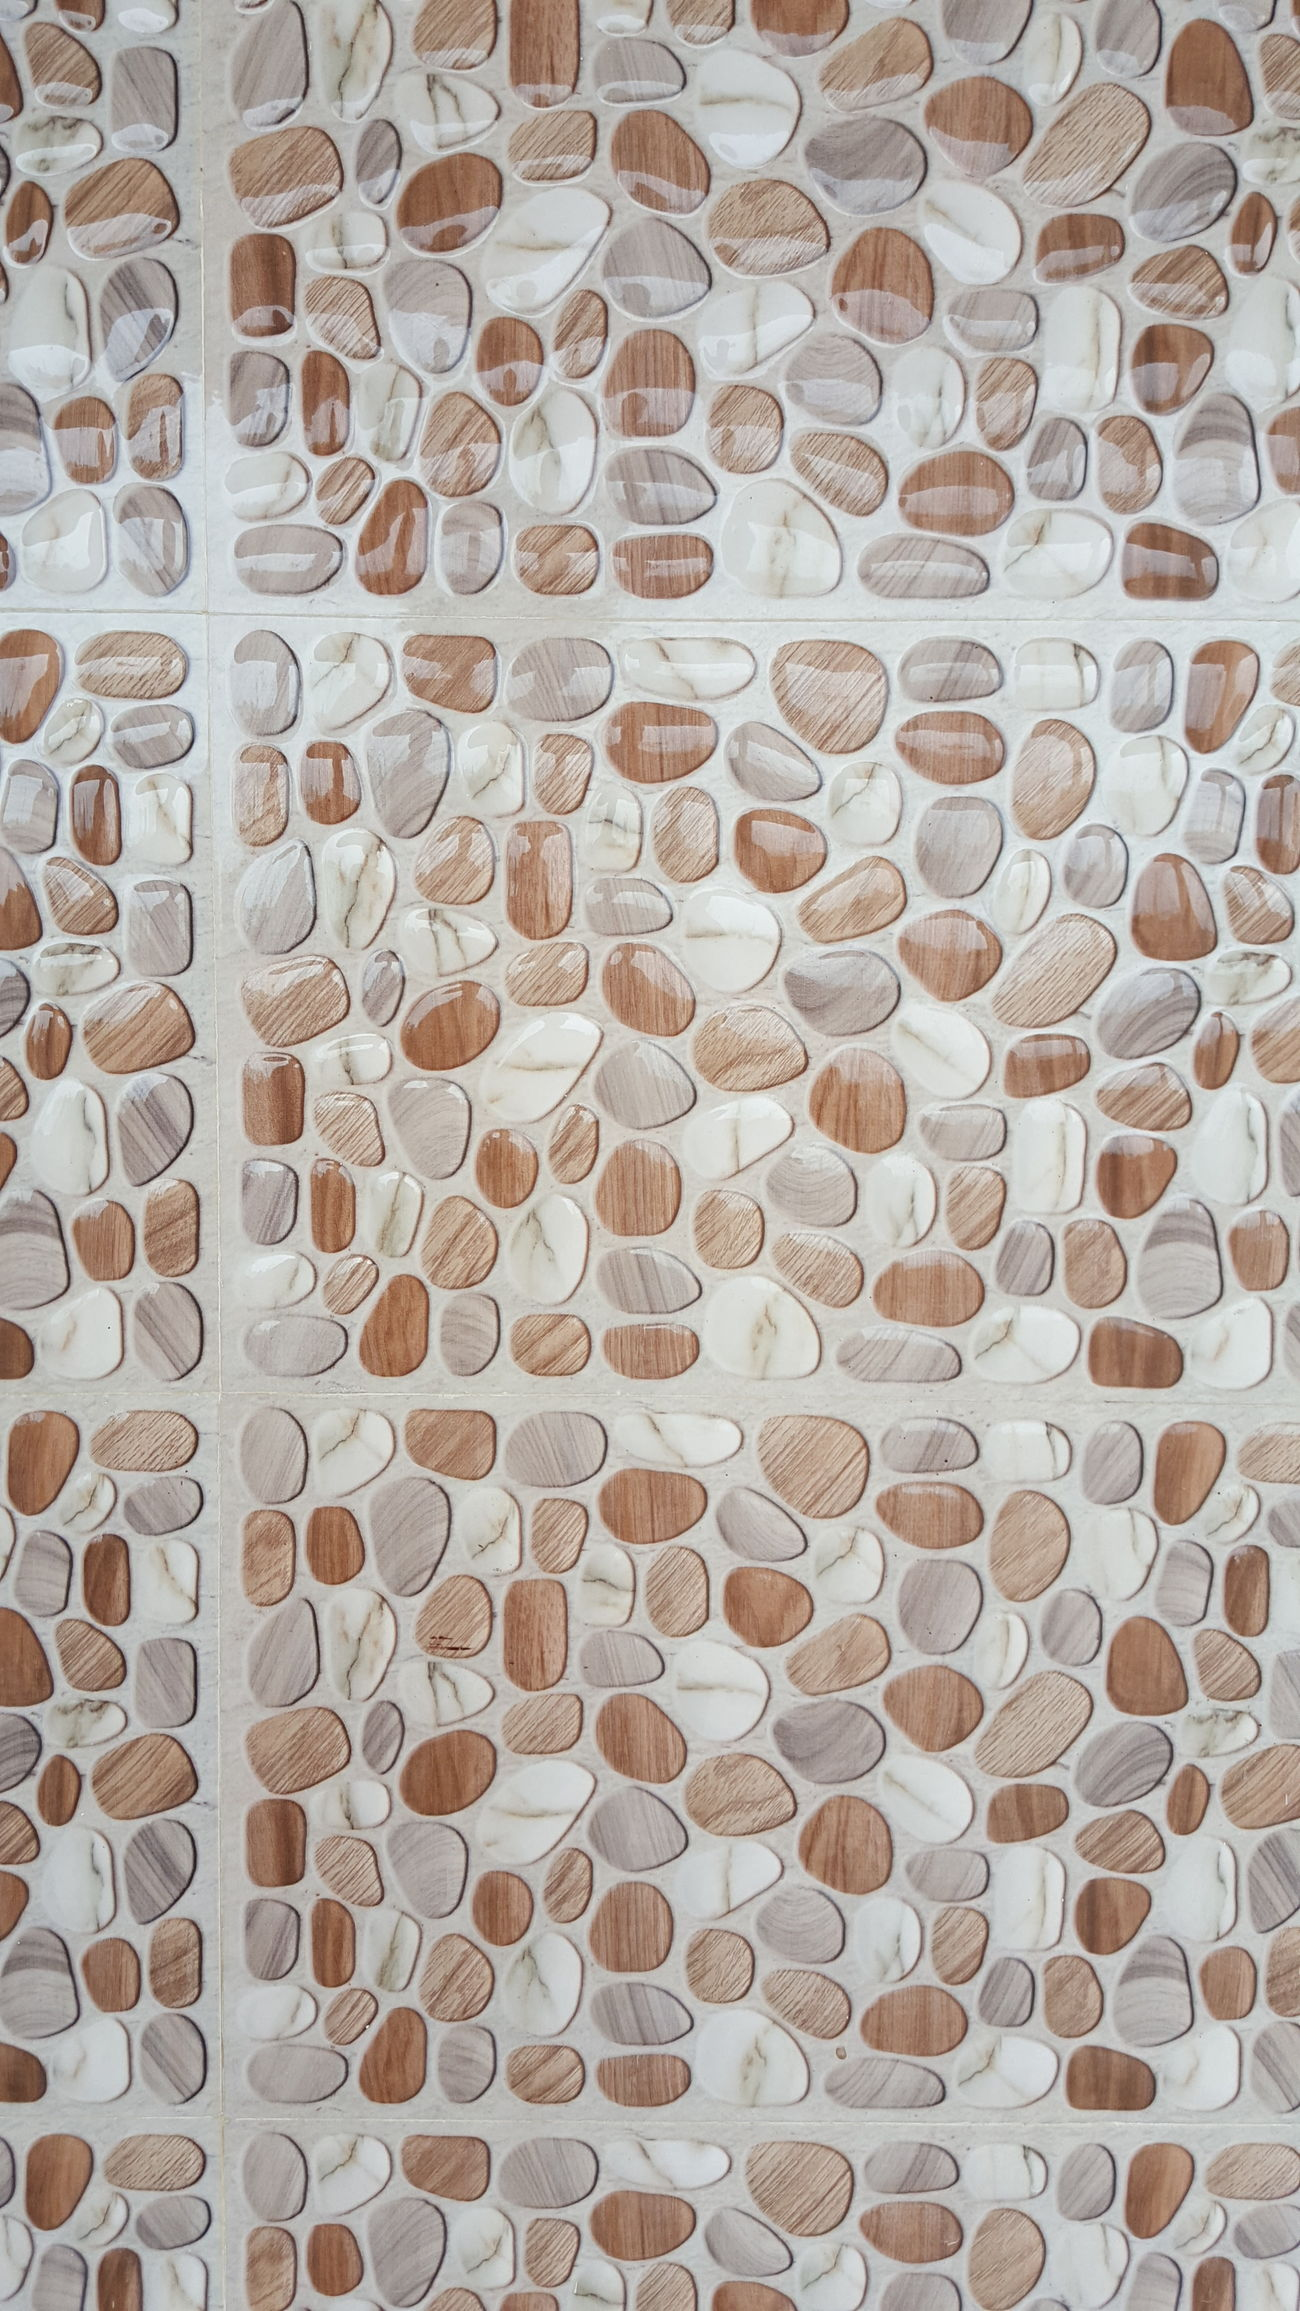 Check This Out Taking Photos Hello World Pattern, Texture, Shape And Form Mobile Photography Pattern Photography Pattern, Texture, Shape And Form Pebbles Pattern PebblesBeLike Wall Textures Tilesphotography Tiles Art Tiles Textures Eyeem Photography EyeEm Gallery EyeEm